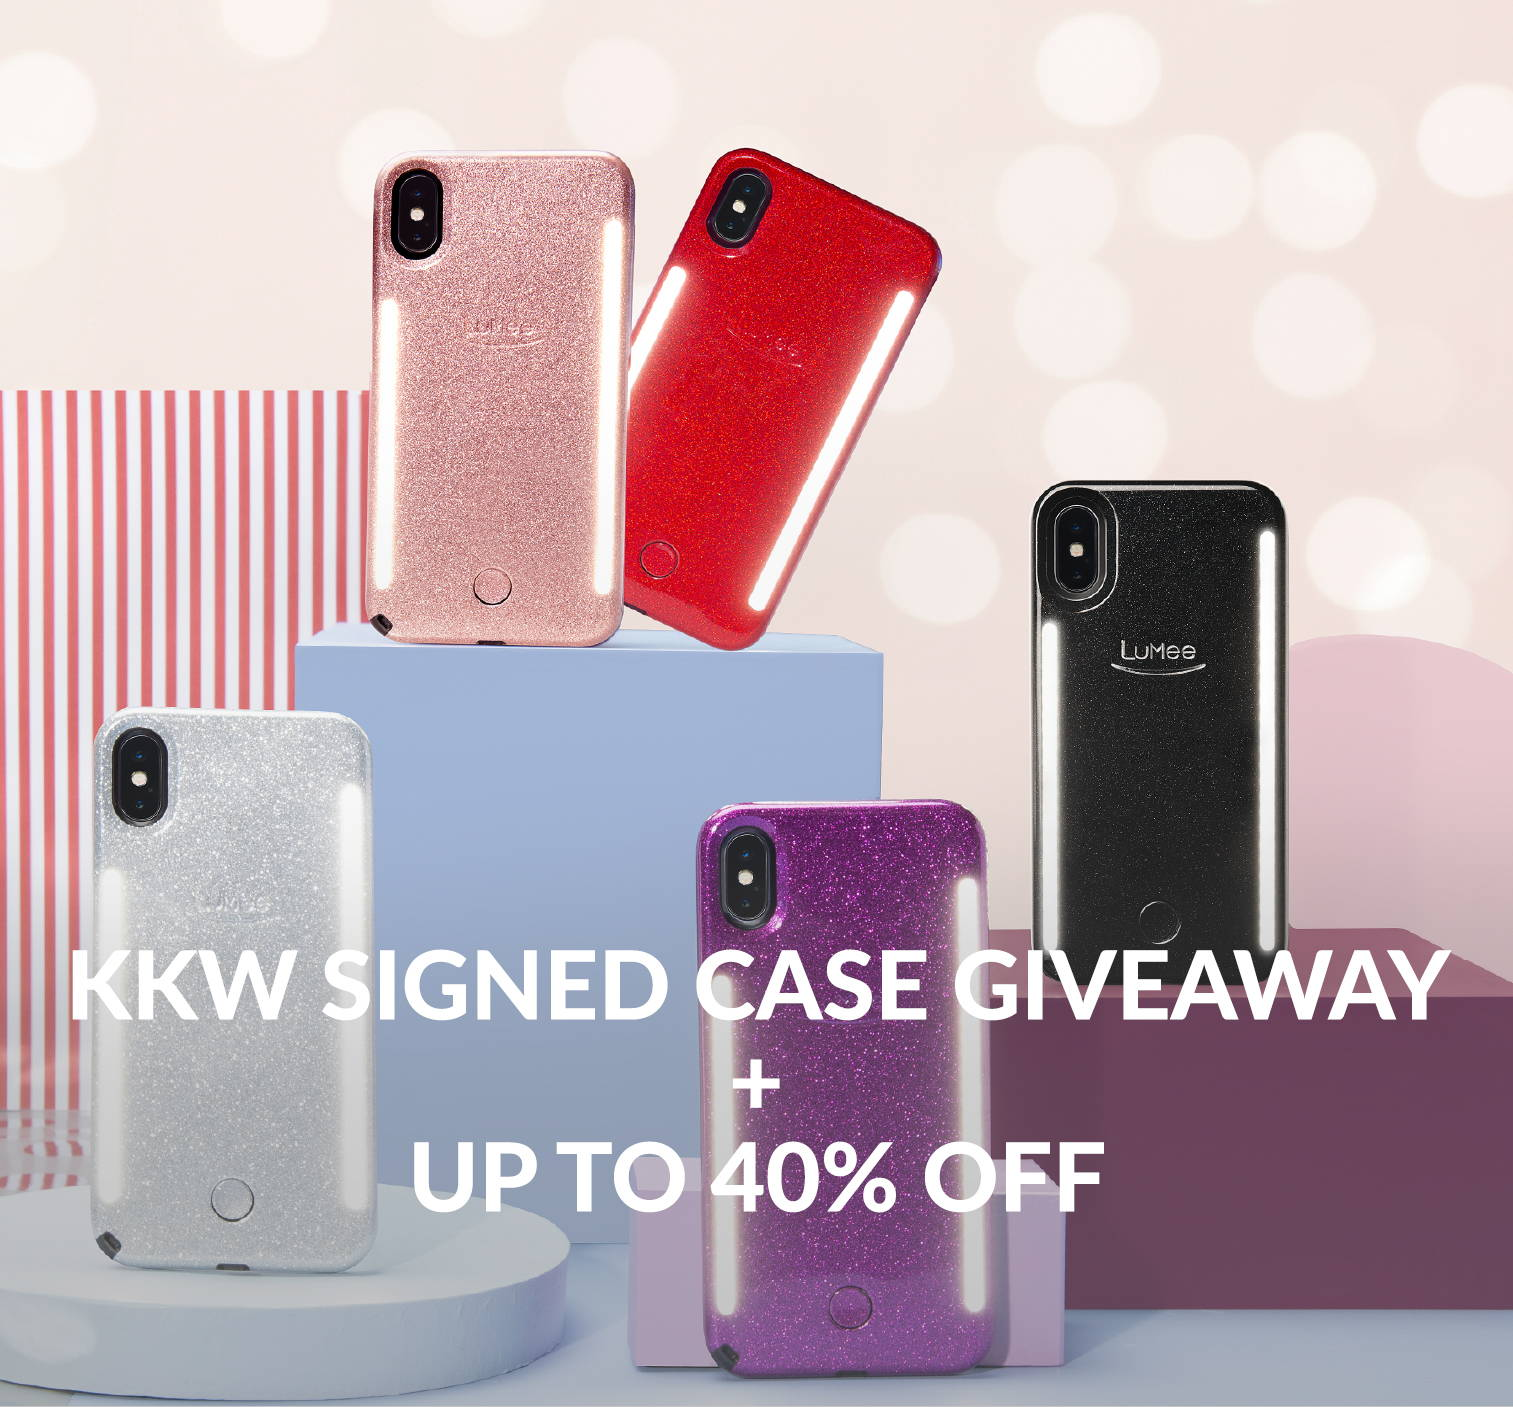 new product 0a89f 2cc60 KKW Signed Case giveaway – LuMee